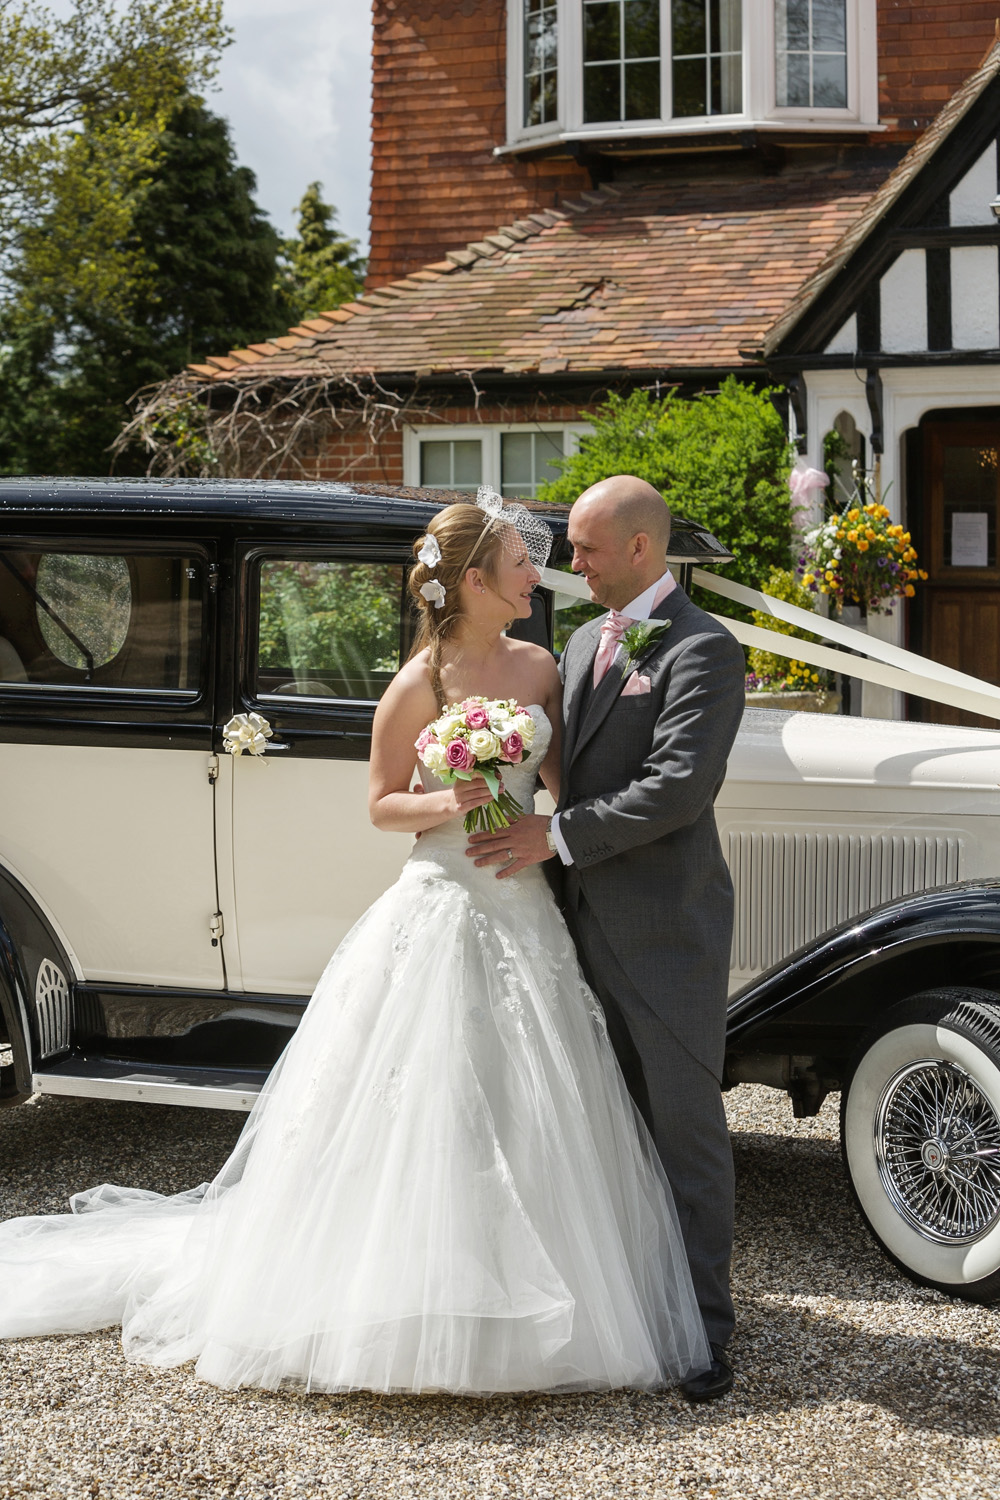 Trunkwell_House_Wedding_Photographer_Reading_Berkshire_025.jpg